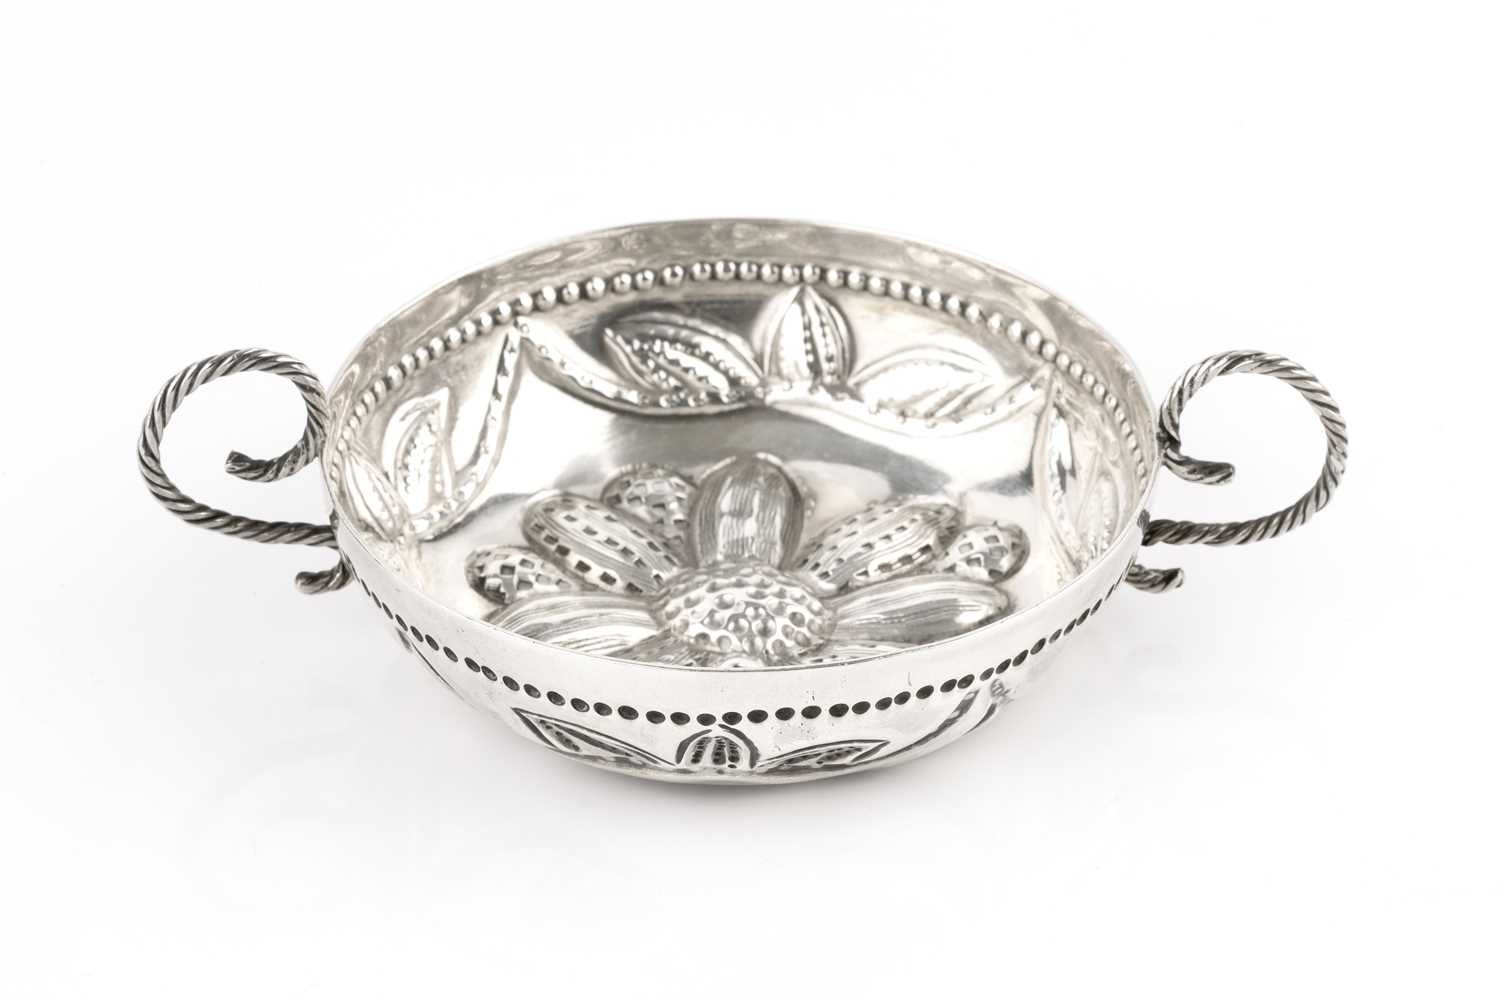 An early 20th century Britannia Standard silver taste vin, embossed with a flowerhead and foliage,